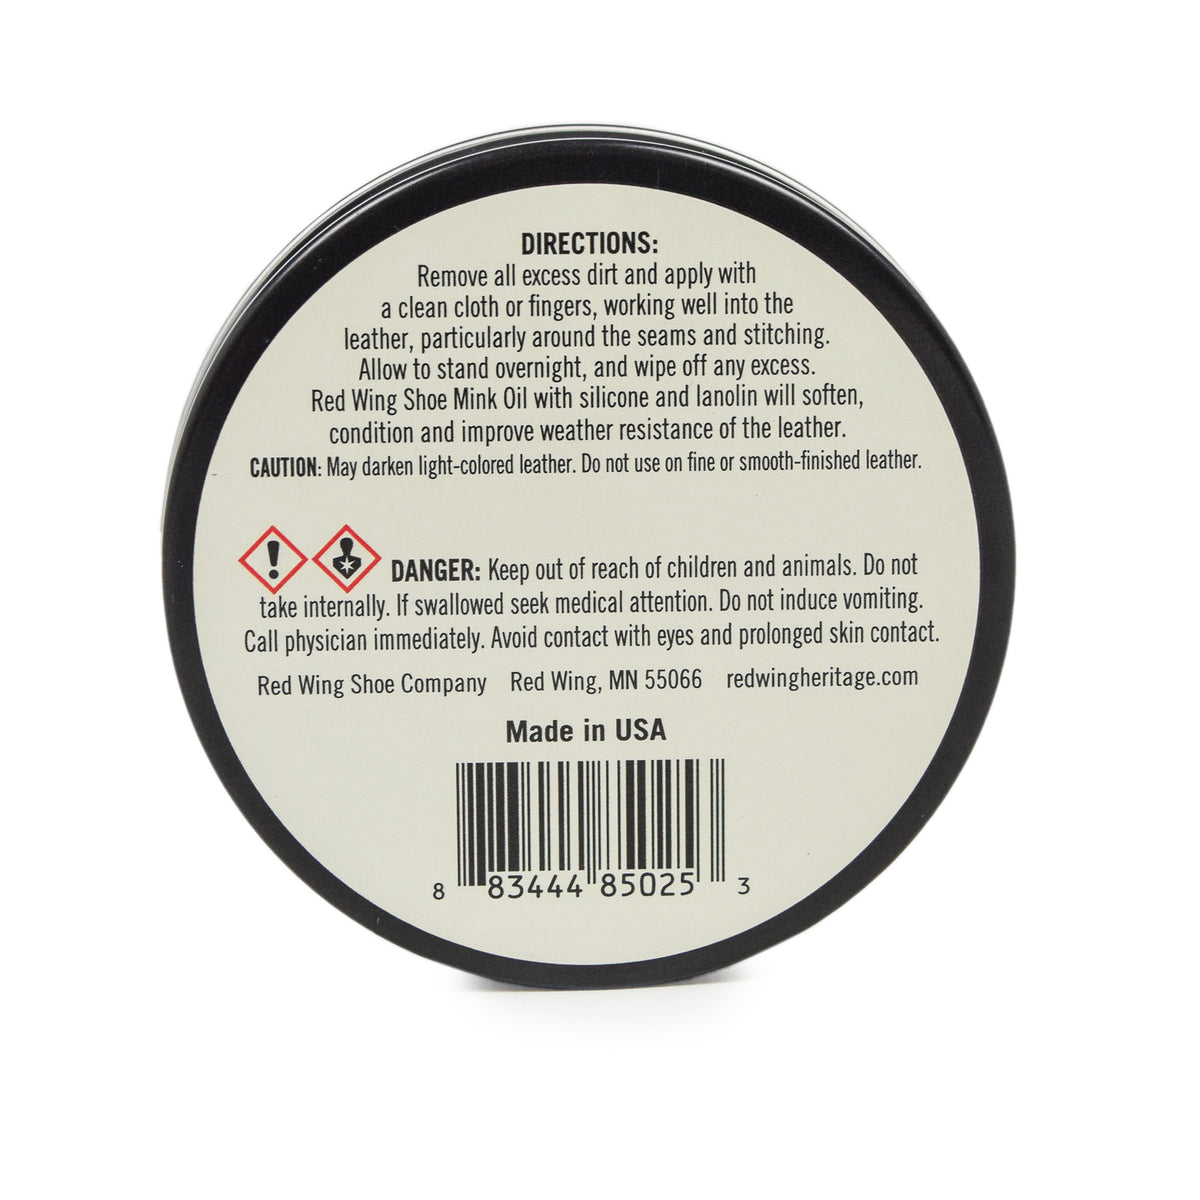 Red Wing Mink Oil Leather Shoe Care Back label